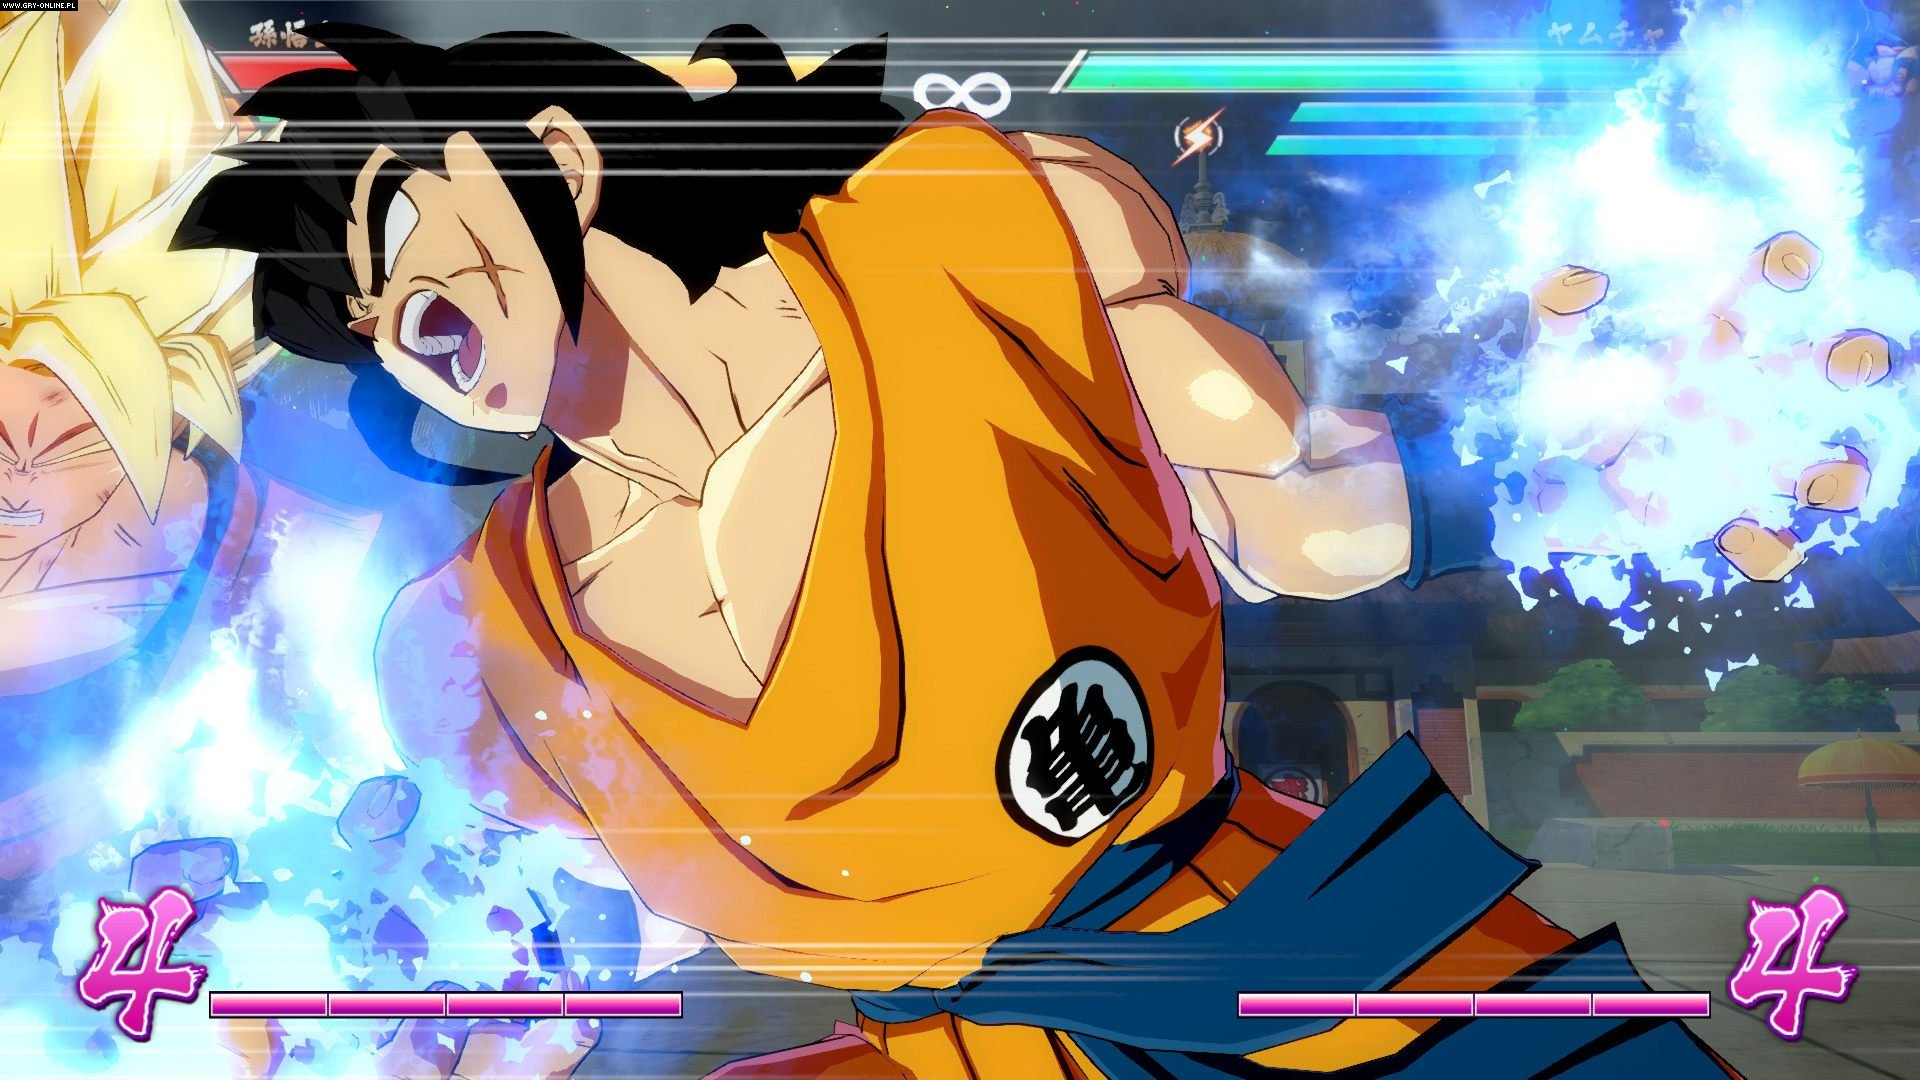 Dragon Ball FighterZ PC, PS4, XONE, Switch Gry Screen 186/230, Arc System Works, Bandai Namco Entertainment